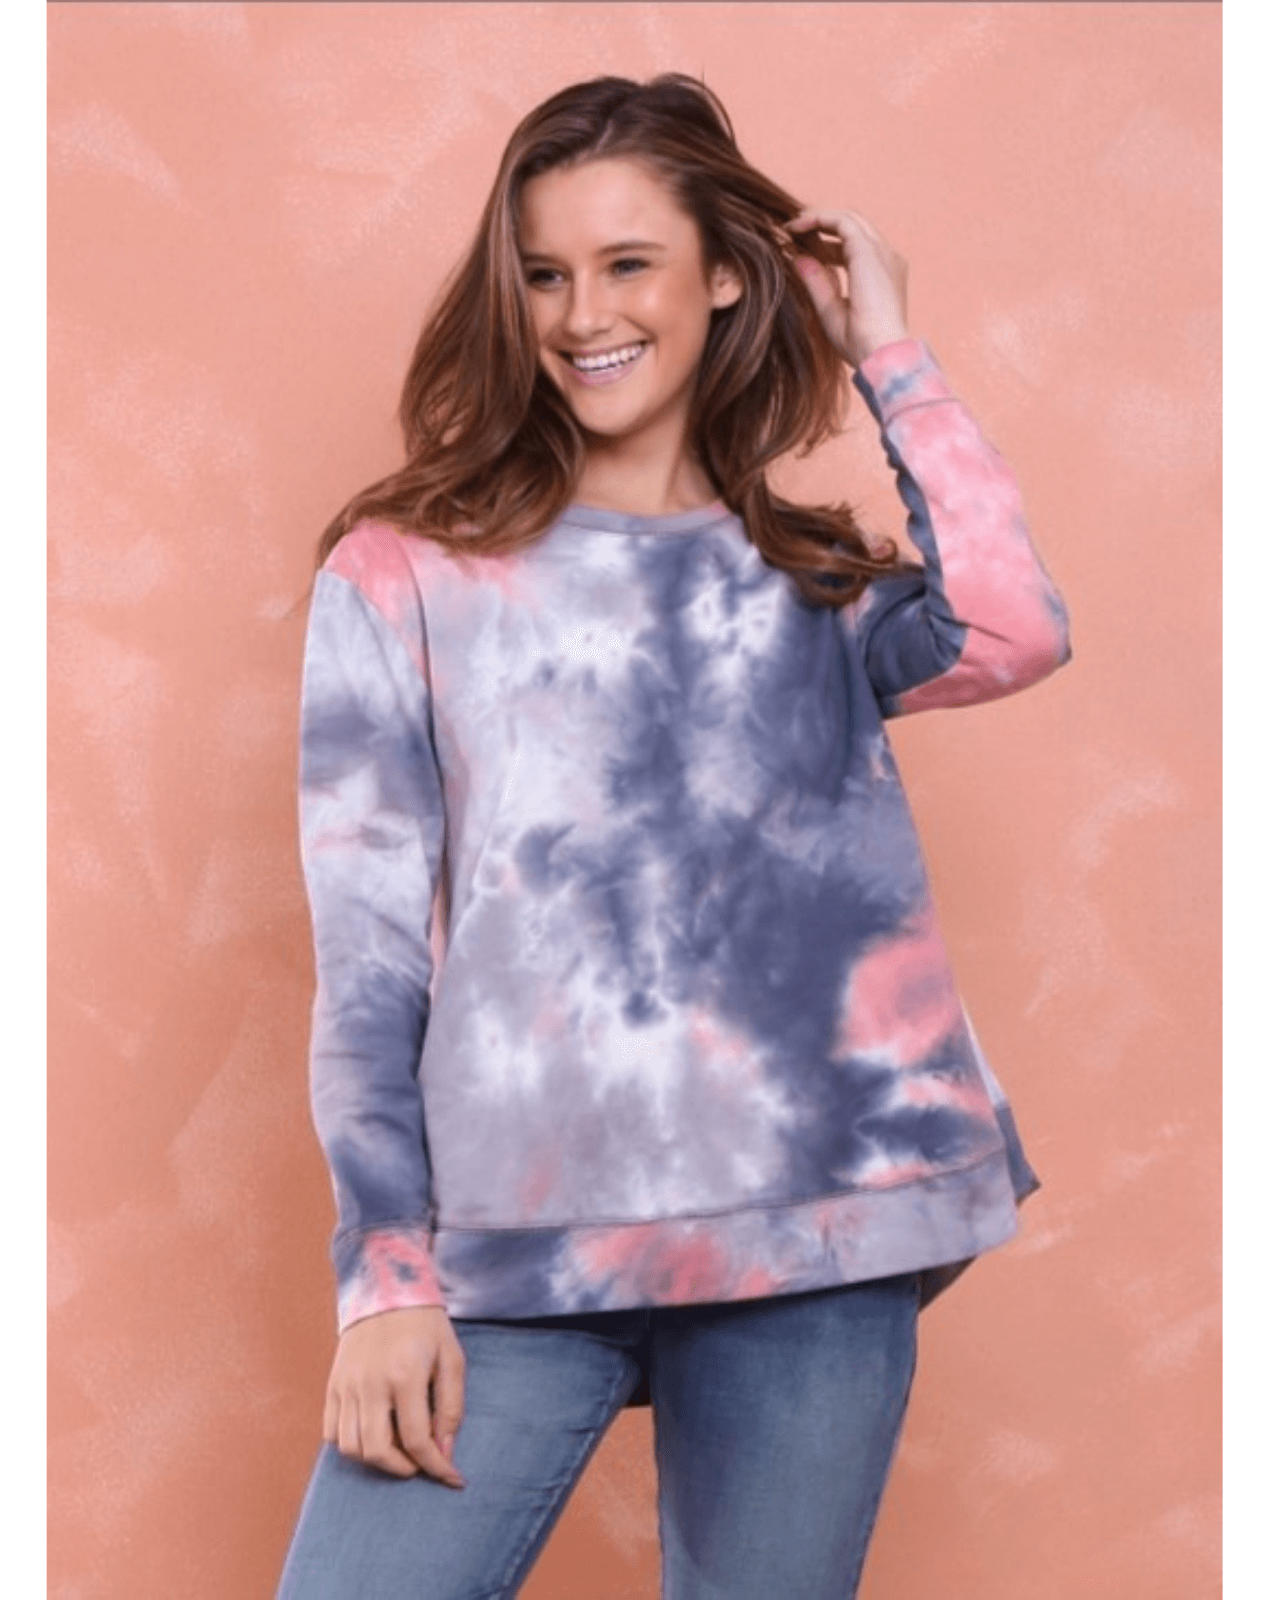 Madonna Luxe Sweater - Charcoal Tie Dye